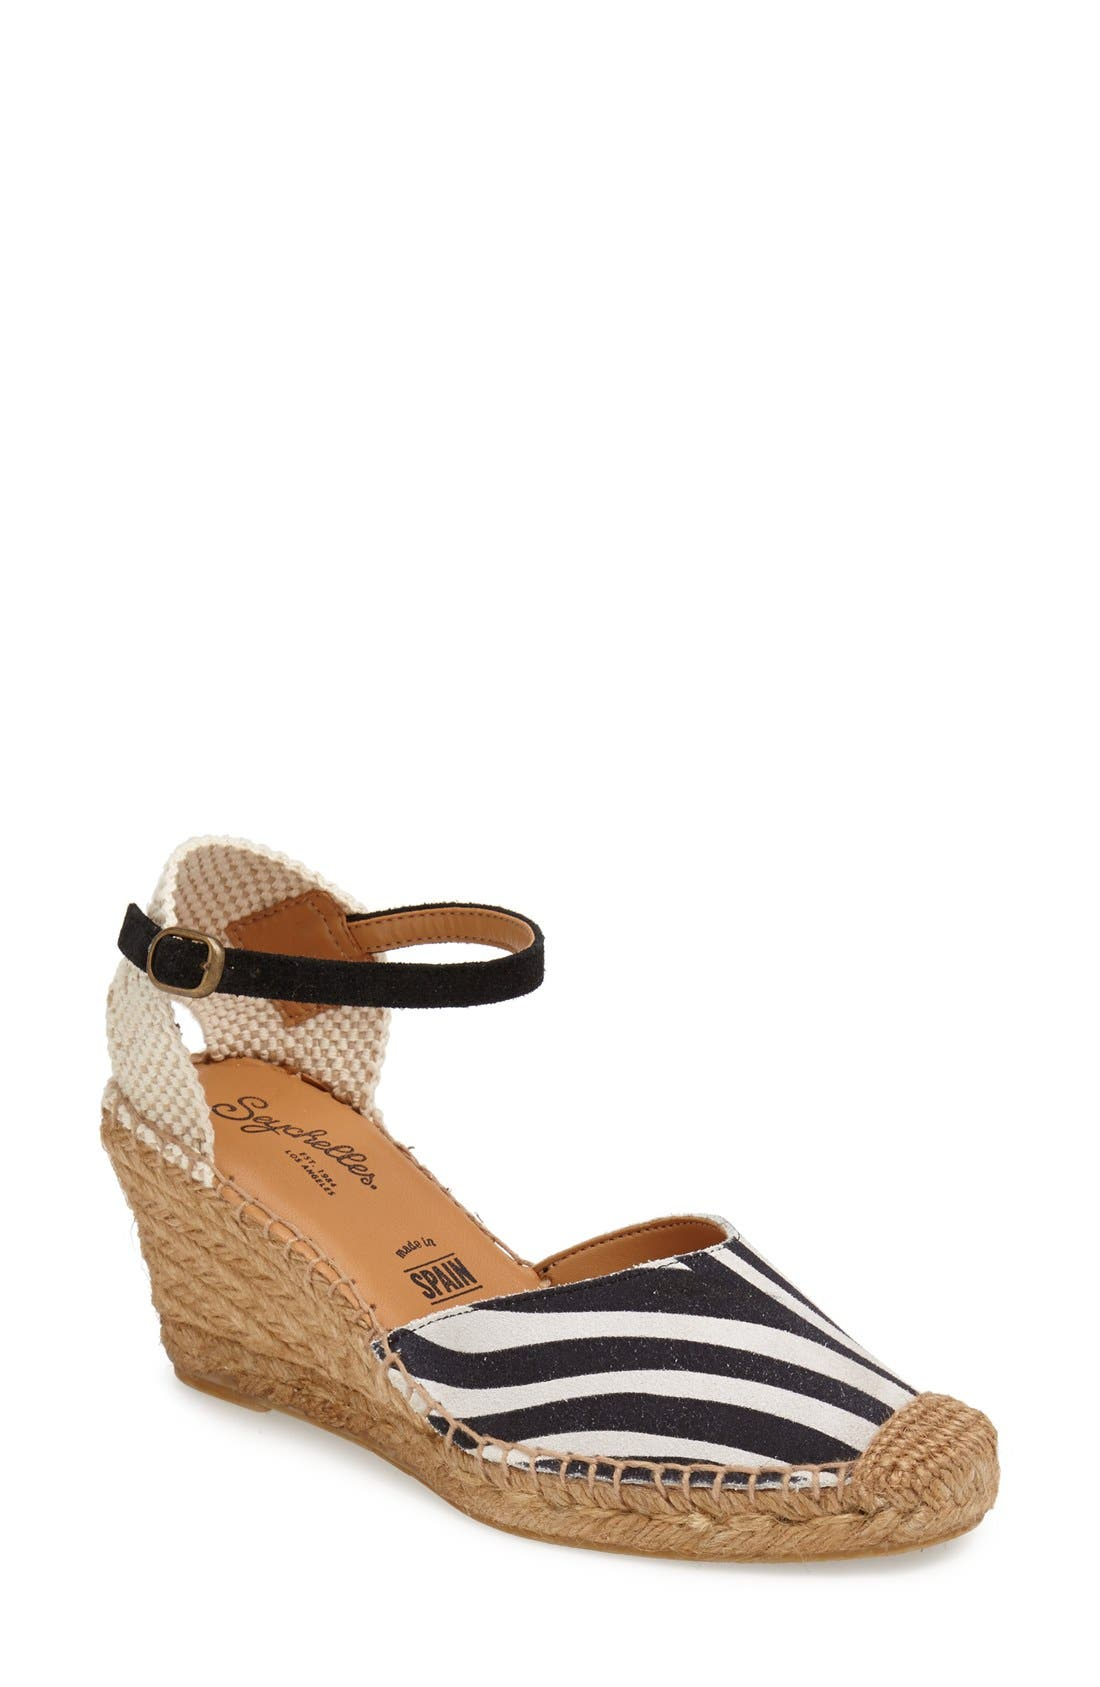 Main Image - Seychelles 'Truth Be Told' Espadrille Wedge Sandal (Women)